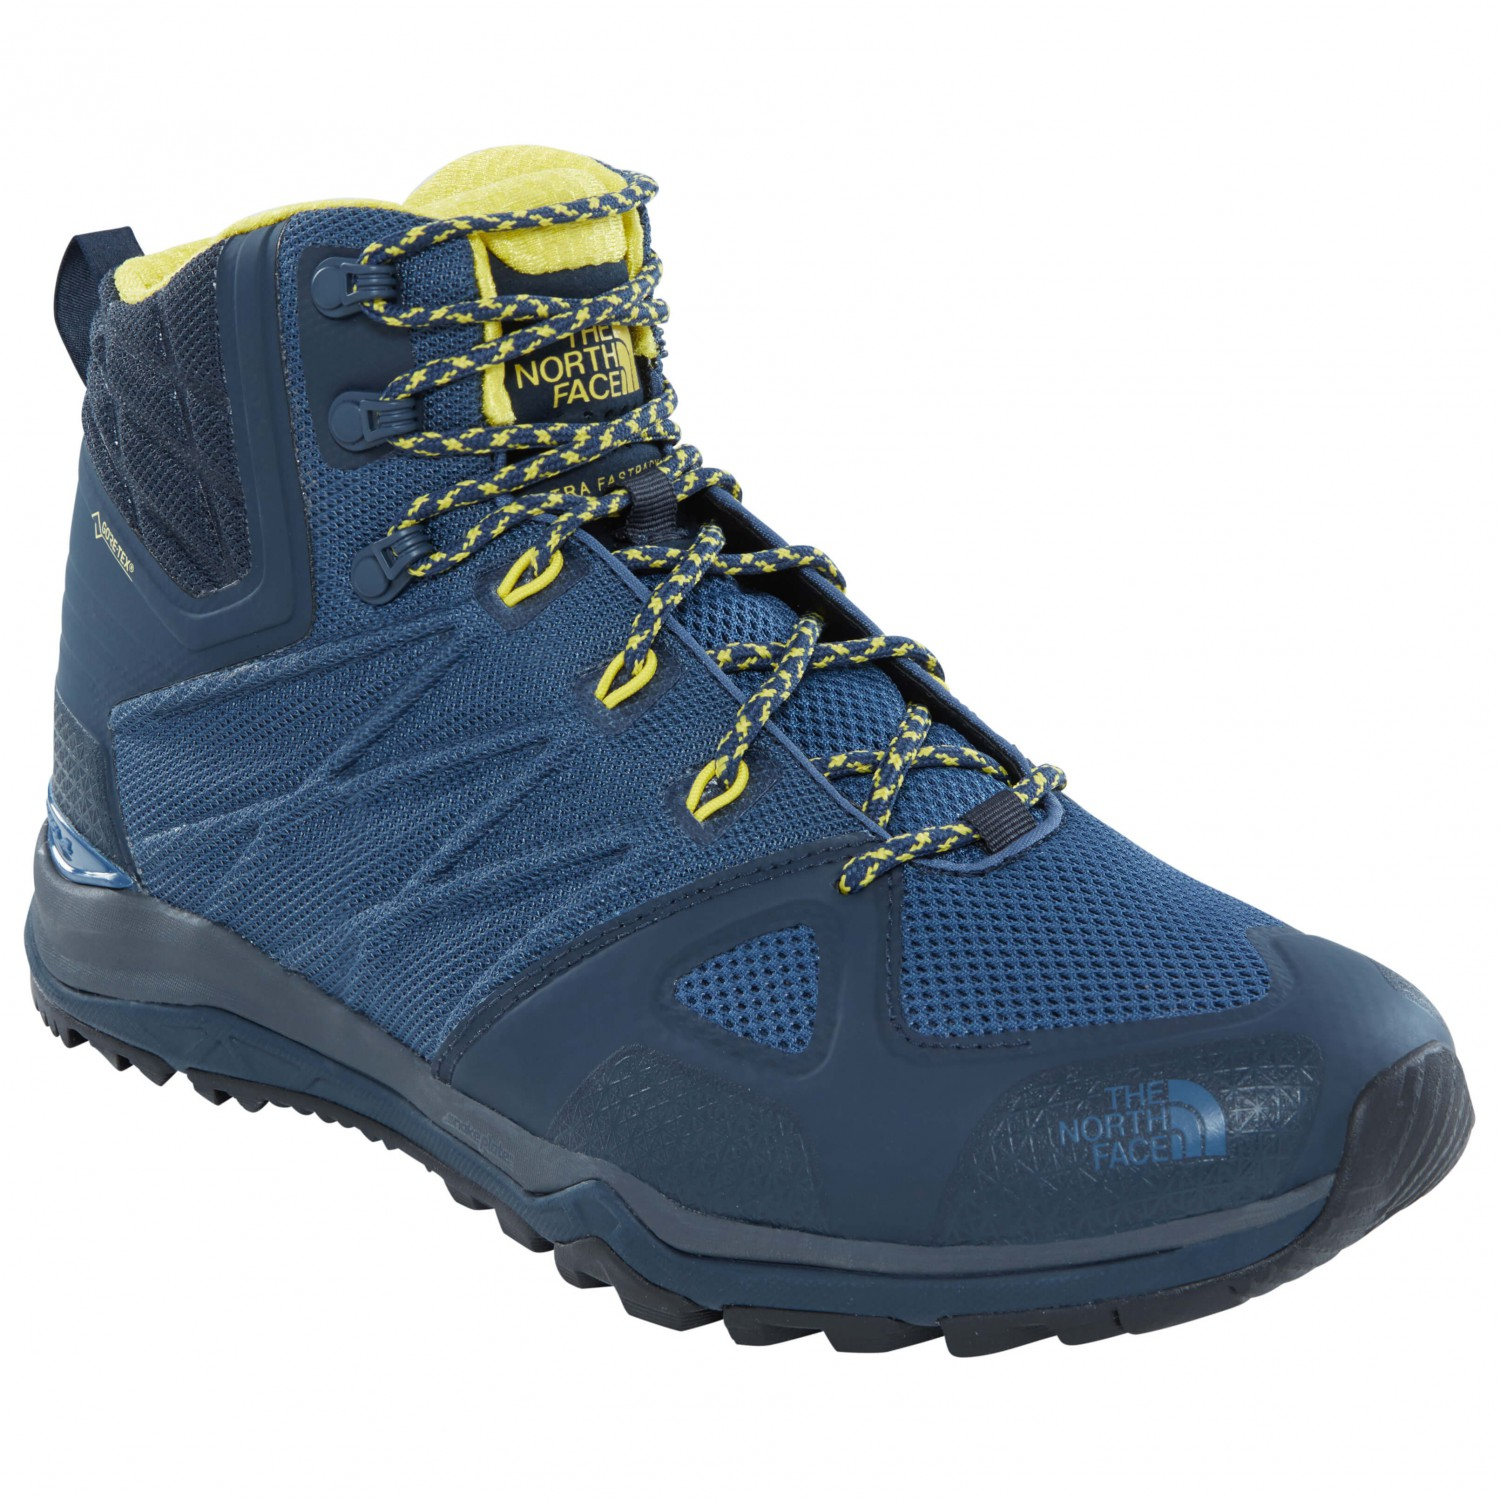 The North Face Ultra Fastpack Ii Mid Gtx Walking Boots